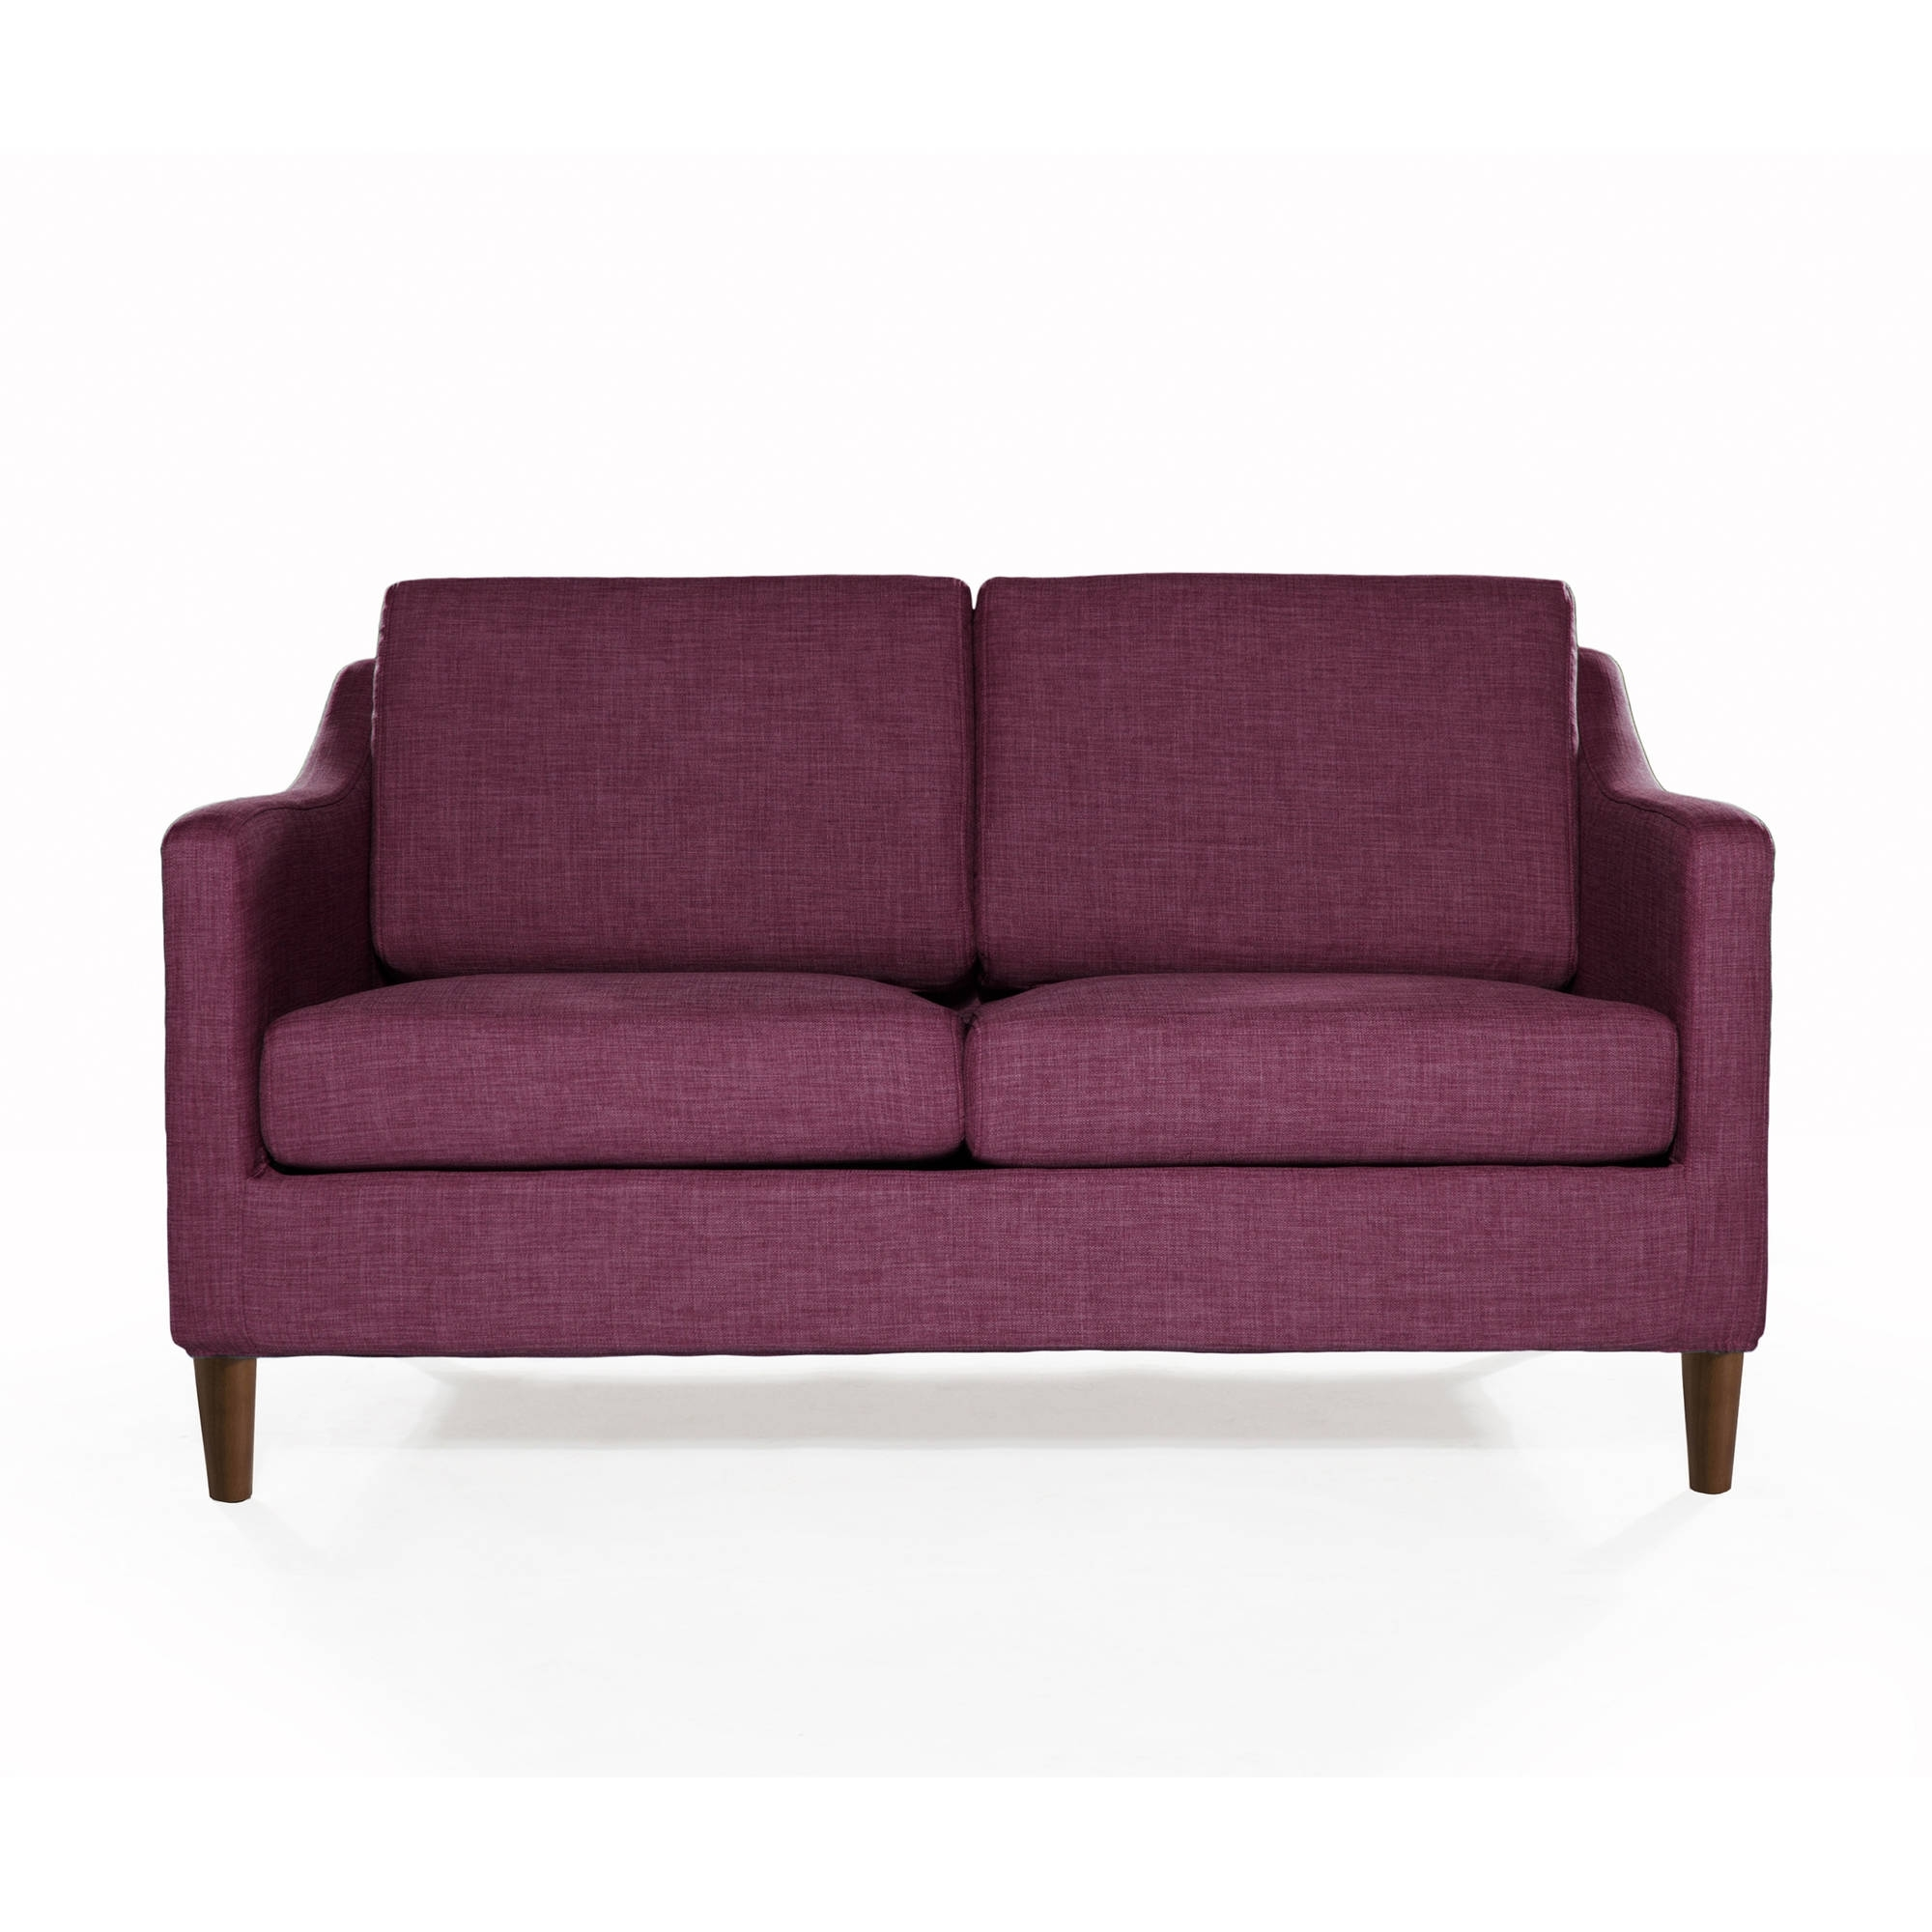 Sectional Sofas – Walmart Pertaining To Sectional Sofas At Walmart (Image 8 of 10)